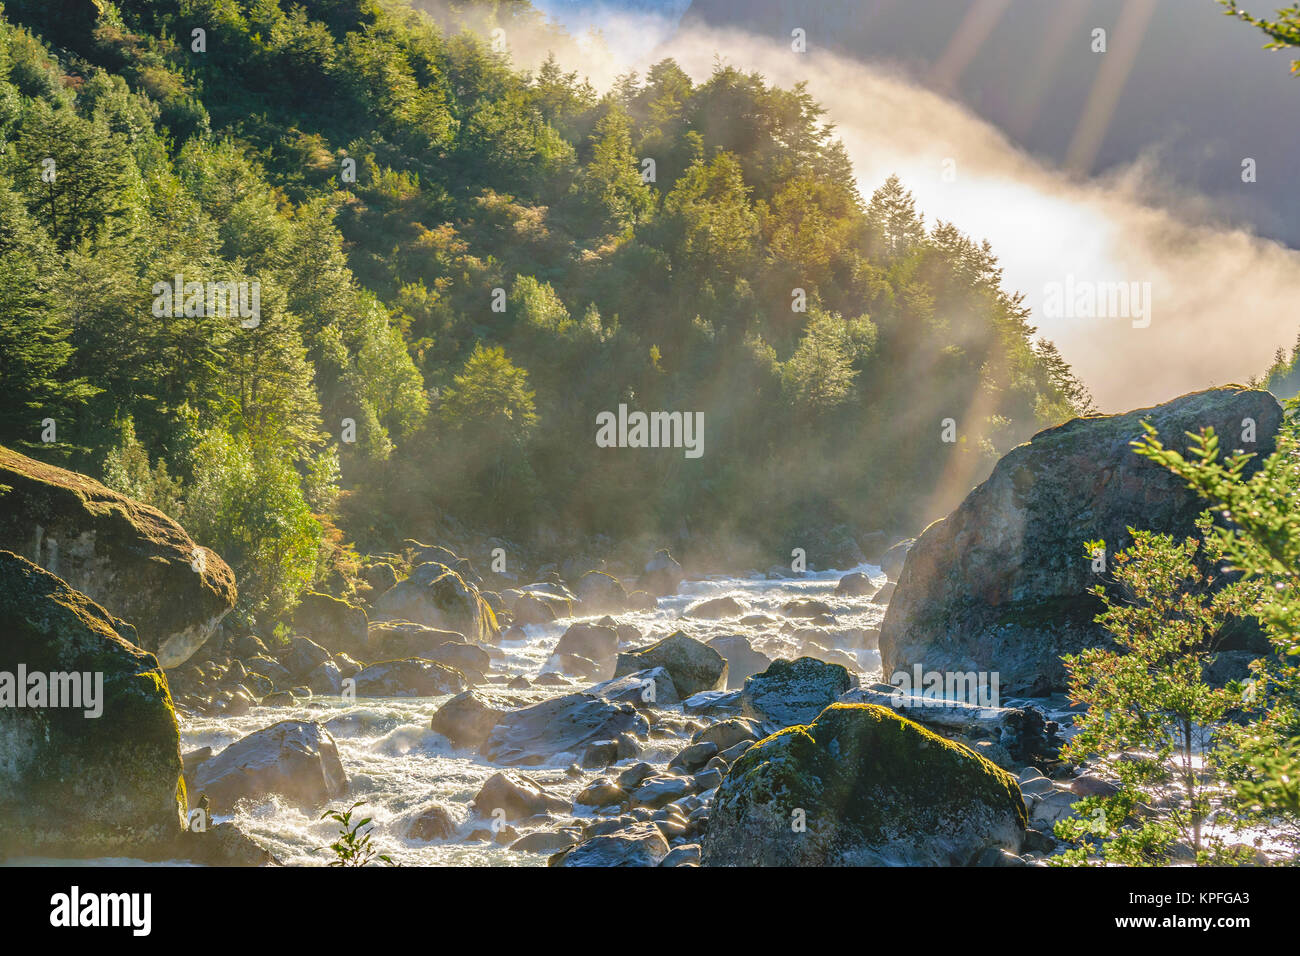 River crossing forest landscape at queulat national park, aysen, chile - Stock Image